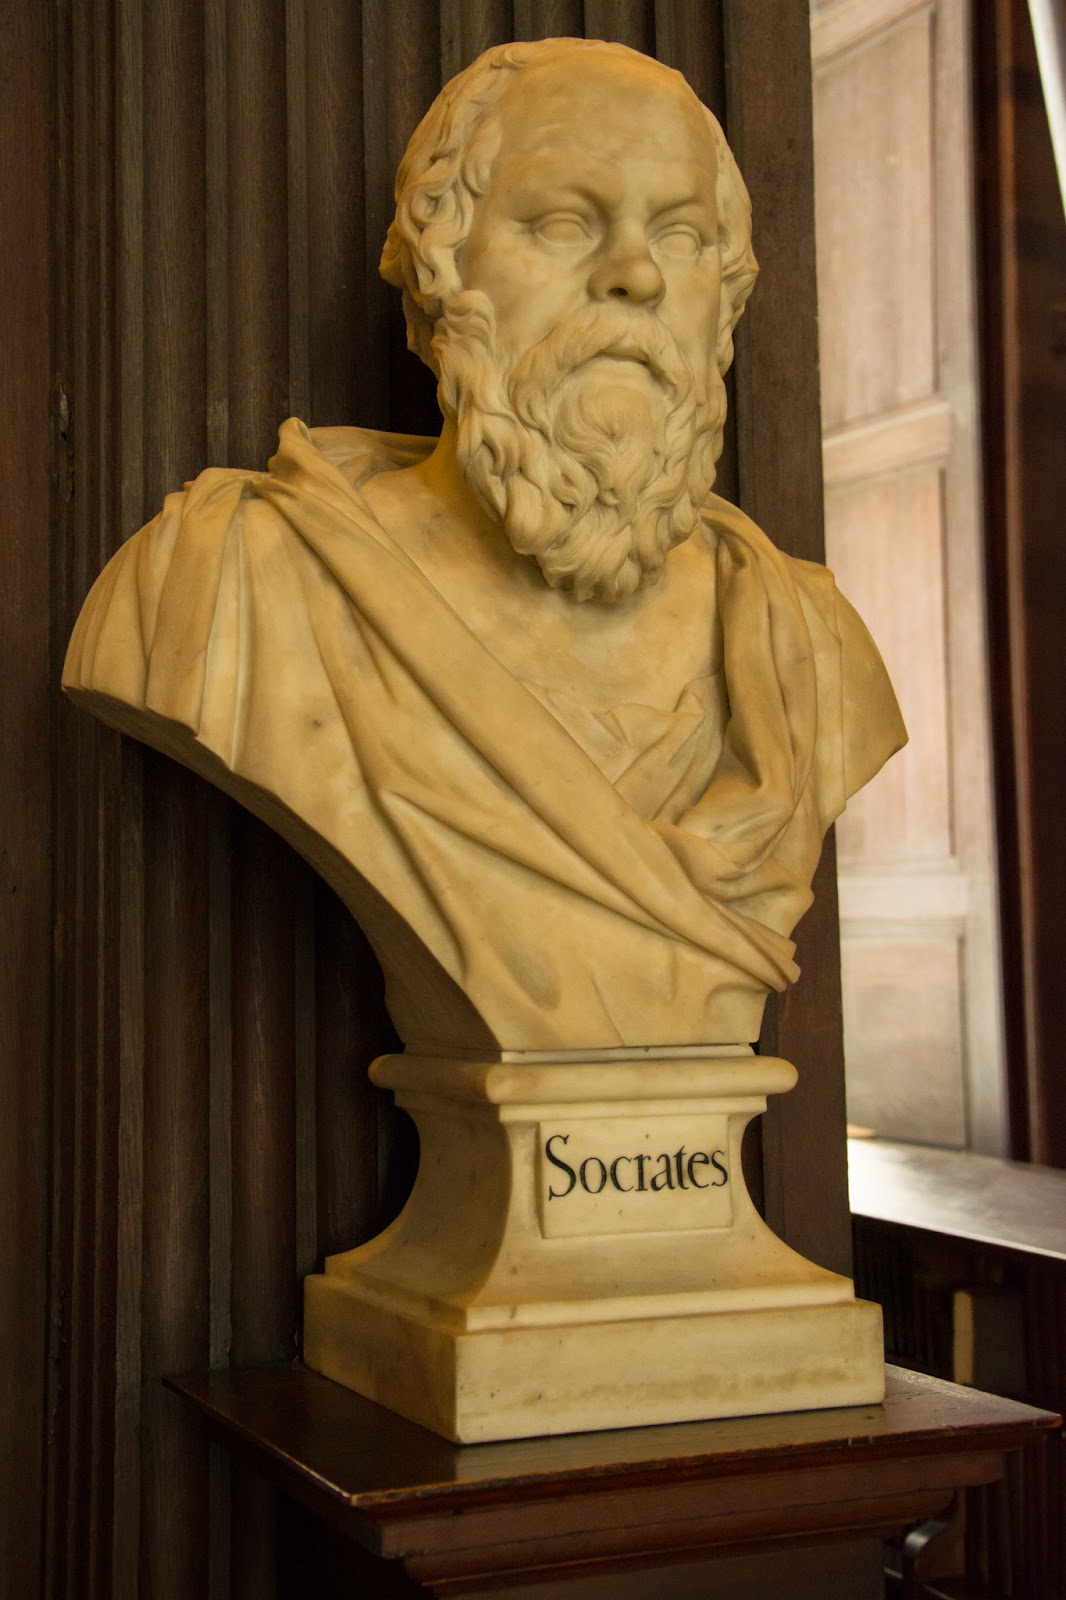 Socrates bust, Trinity College